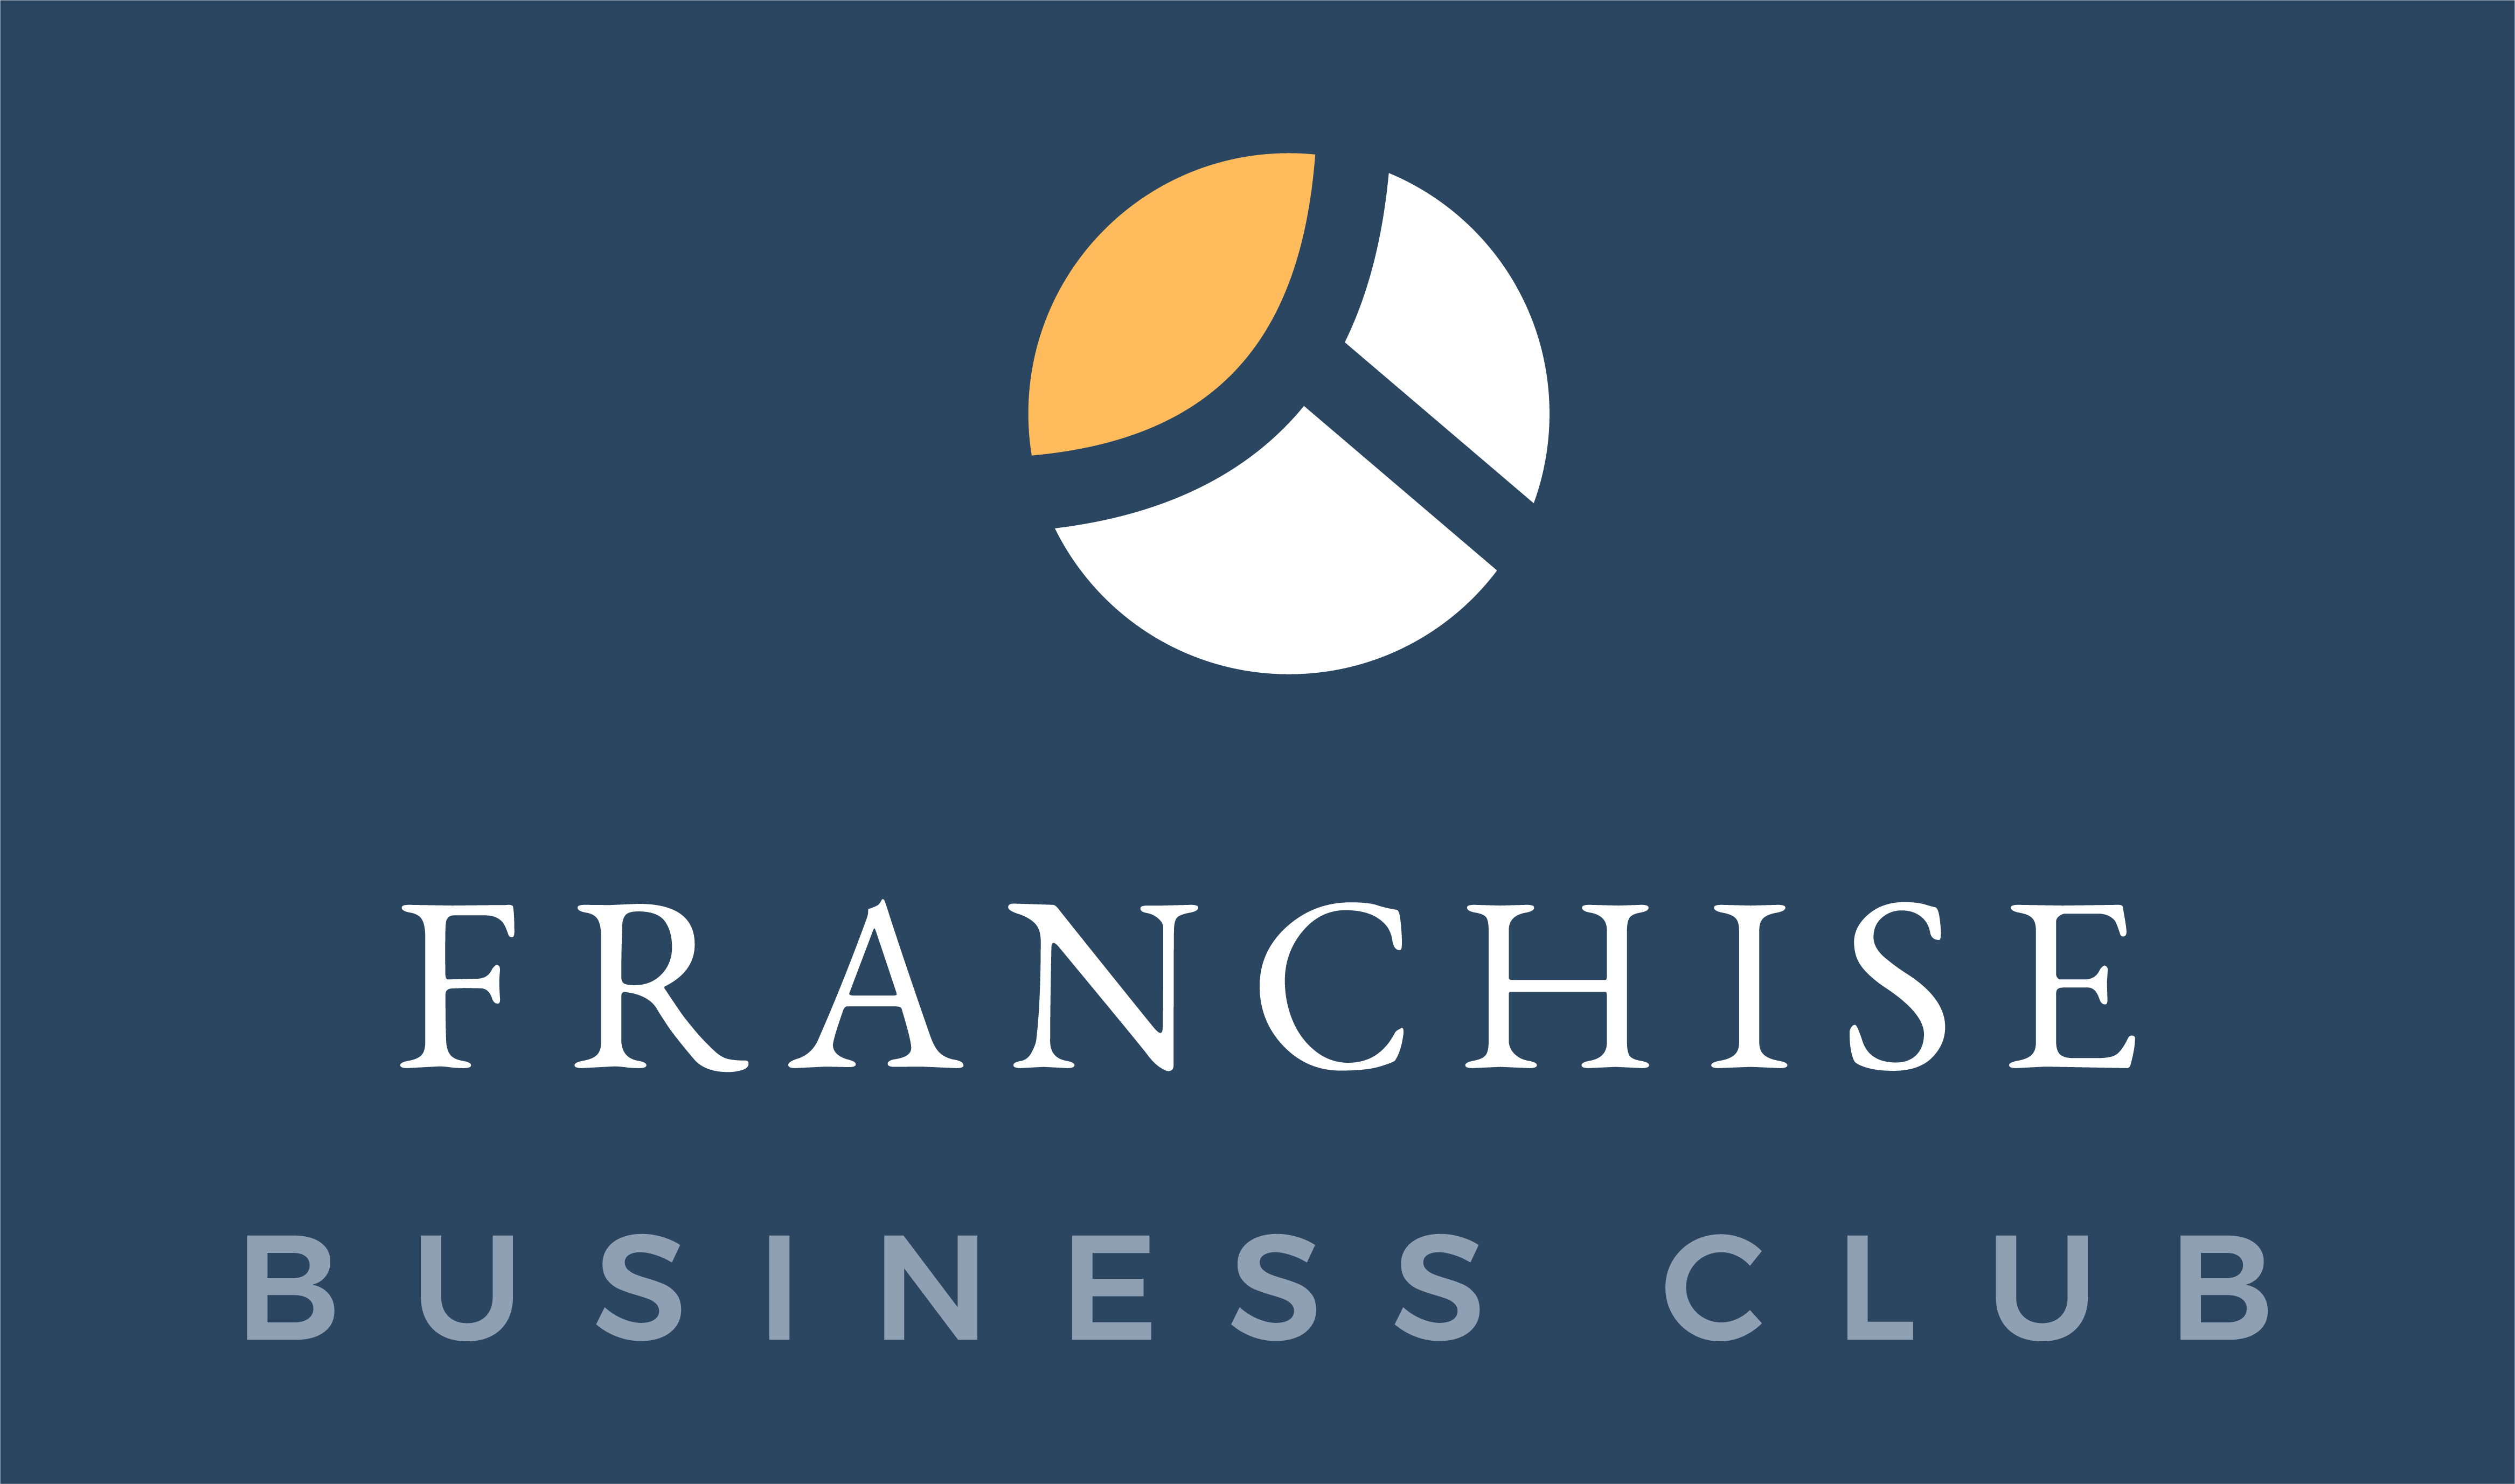 Franchise Business Club België